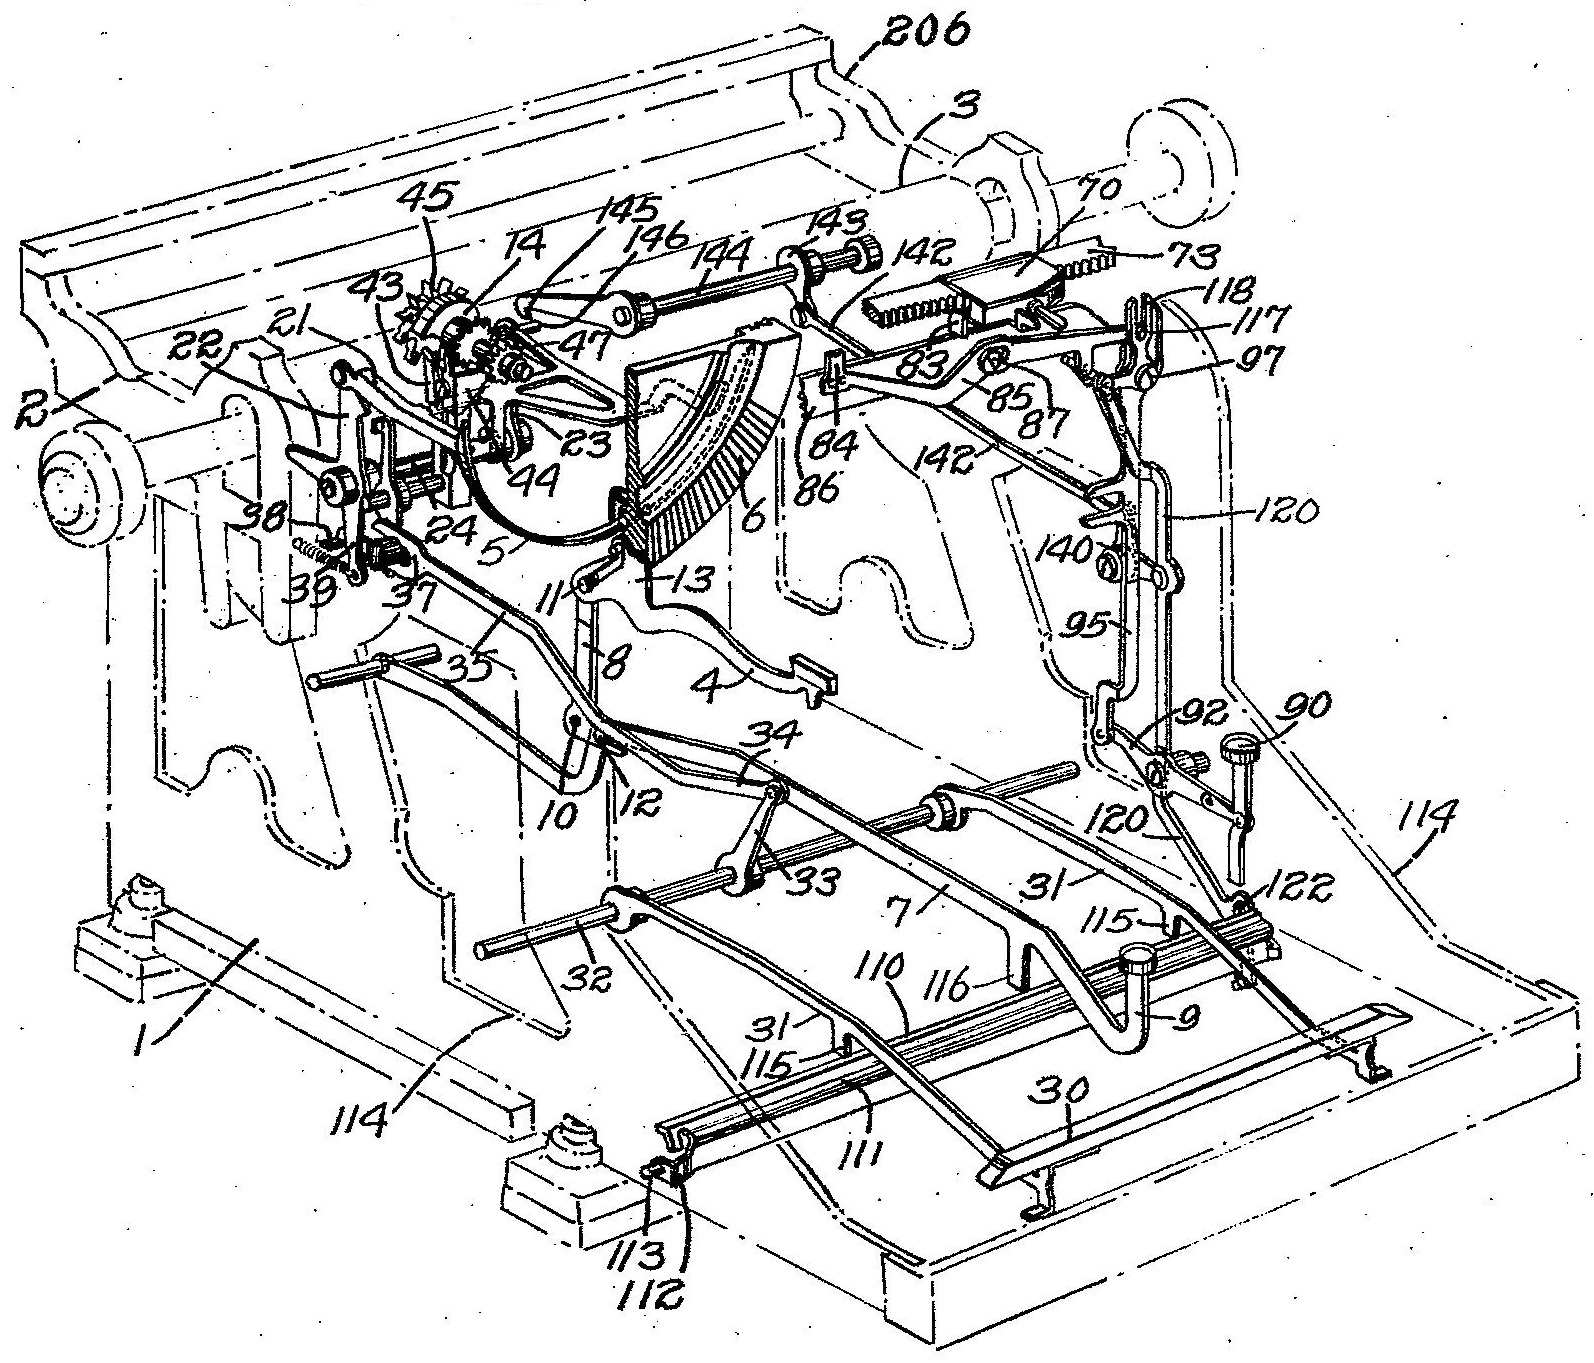 oz typewriter on this day in typewriter history the burroughs Wiring a Light Fan Combo oz typewriter on this day in typewriter history the burroughs typewriter not burroughs typewriter